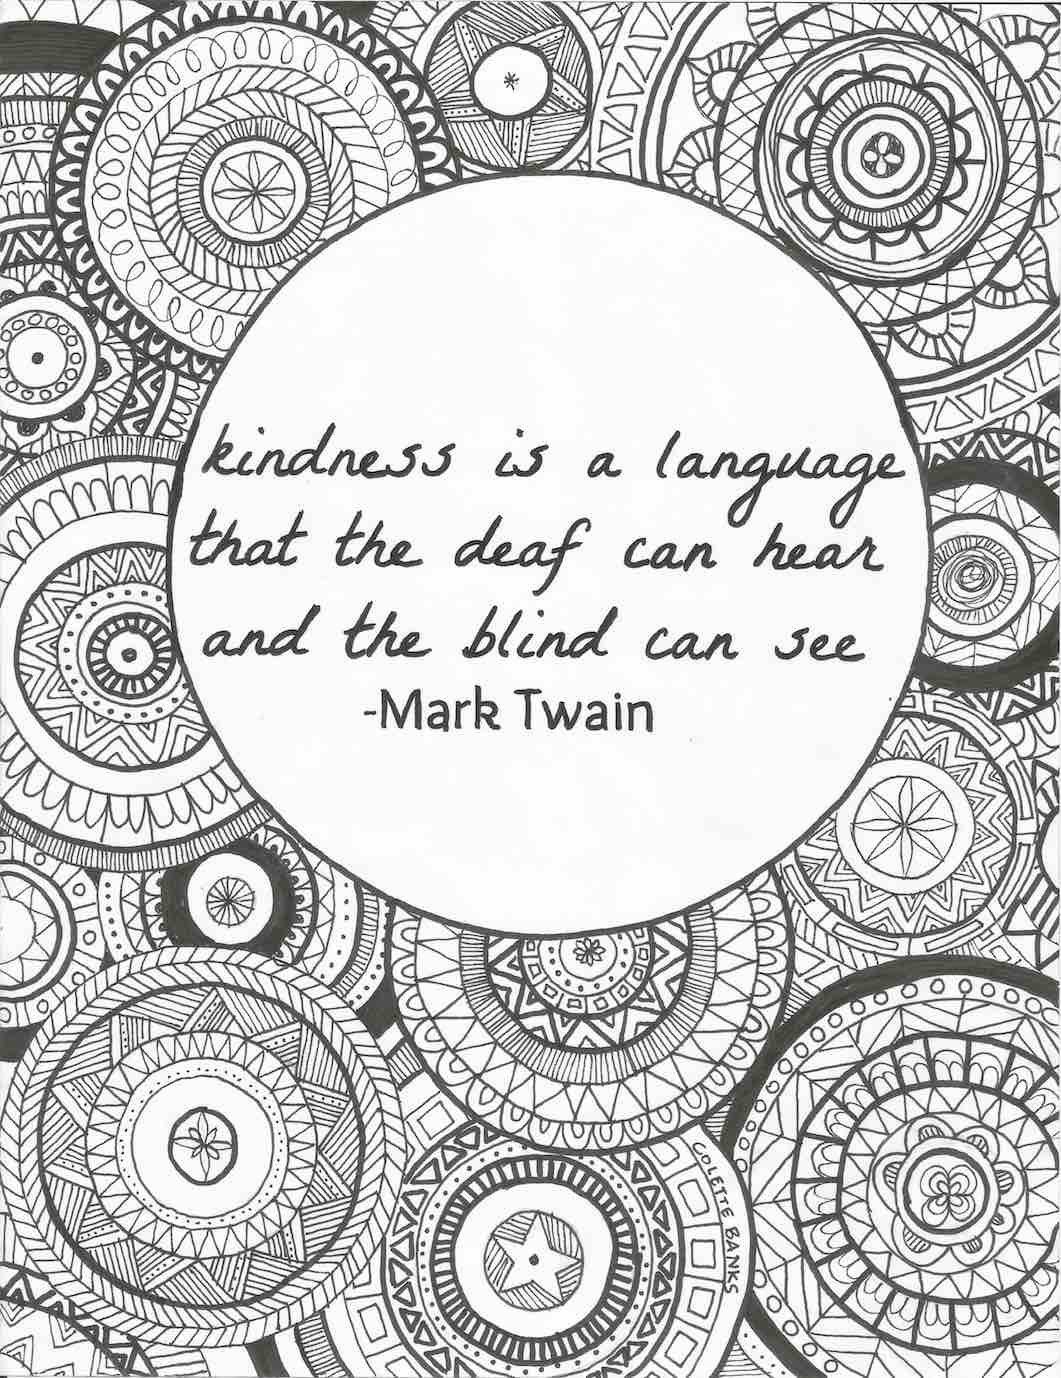 Coloring pages kindness - Quote Adult Coloring Page Kindness By Mark Twain By Essenceofink